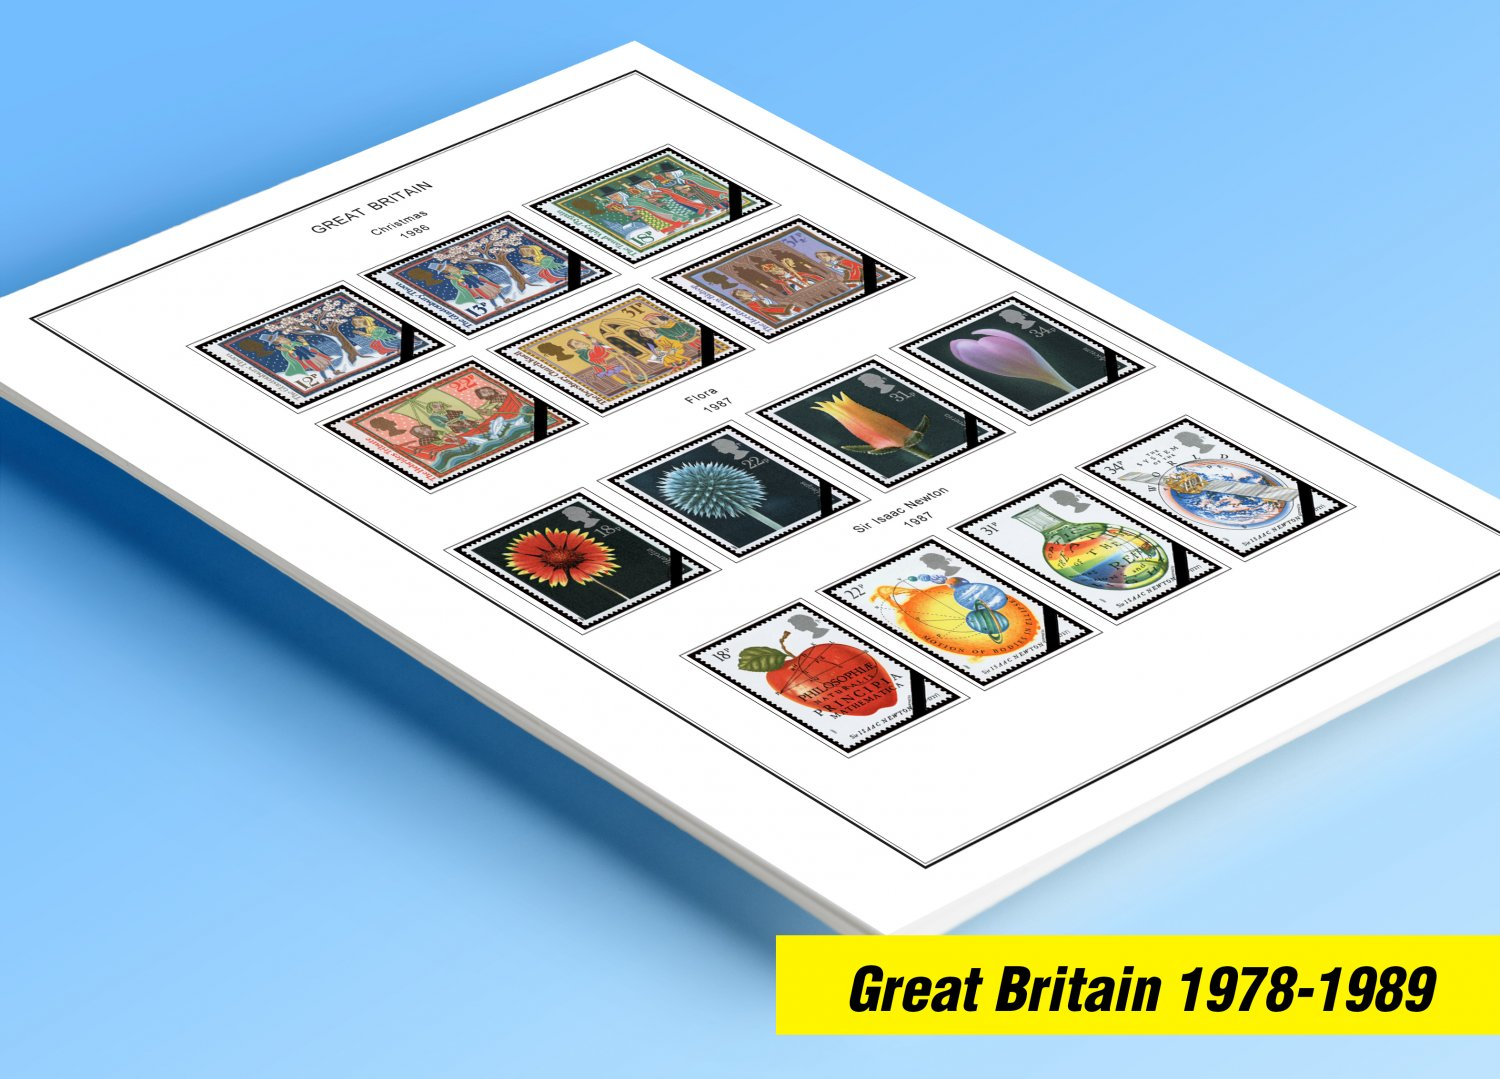 COLOR PRINTED GREAT BRITAIN 1978-1989 STAMP ALBUM PAGES (51 illustrated pages)